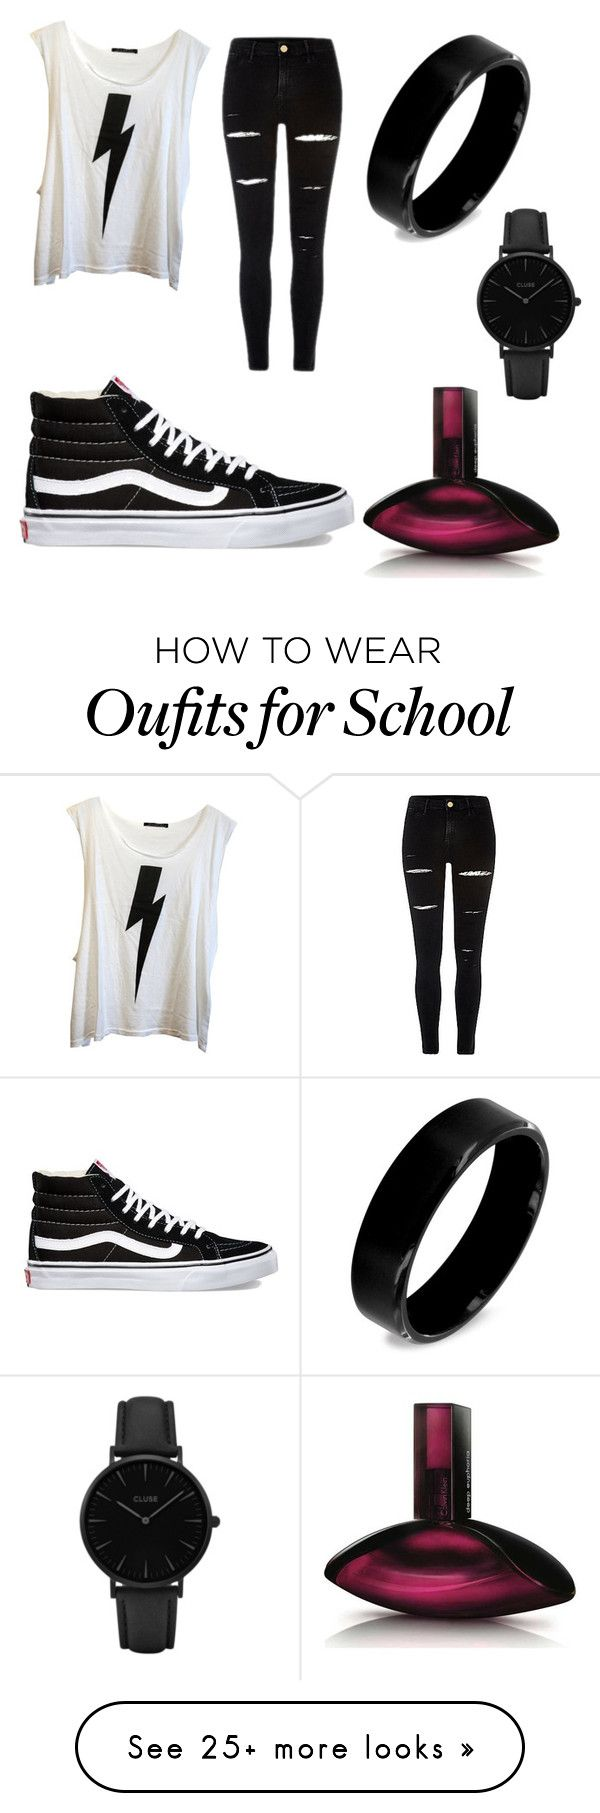 """""""School outfit #43"""" by hoodchick on Polyvore featuring Wildfox, Vans, West Coast Jewelry, CLUSE and Calvin Klein"""